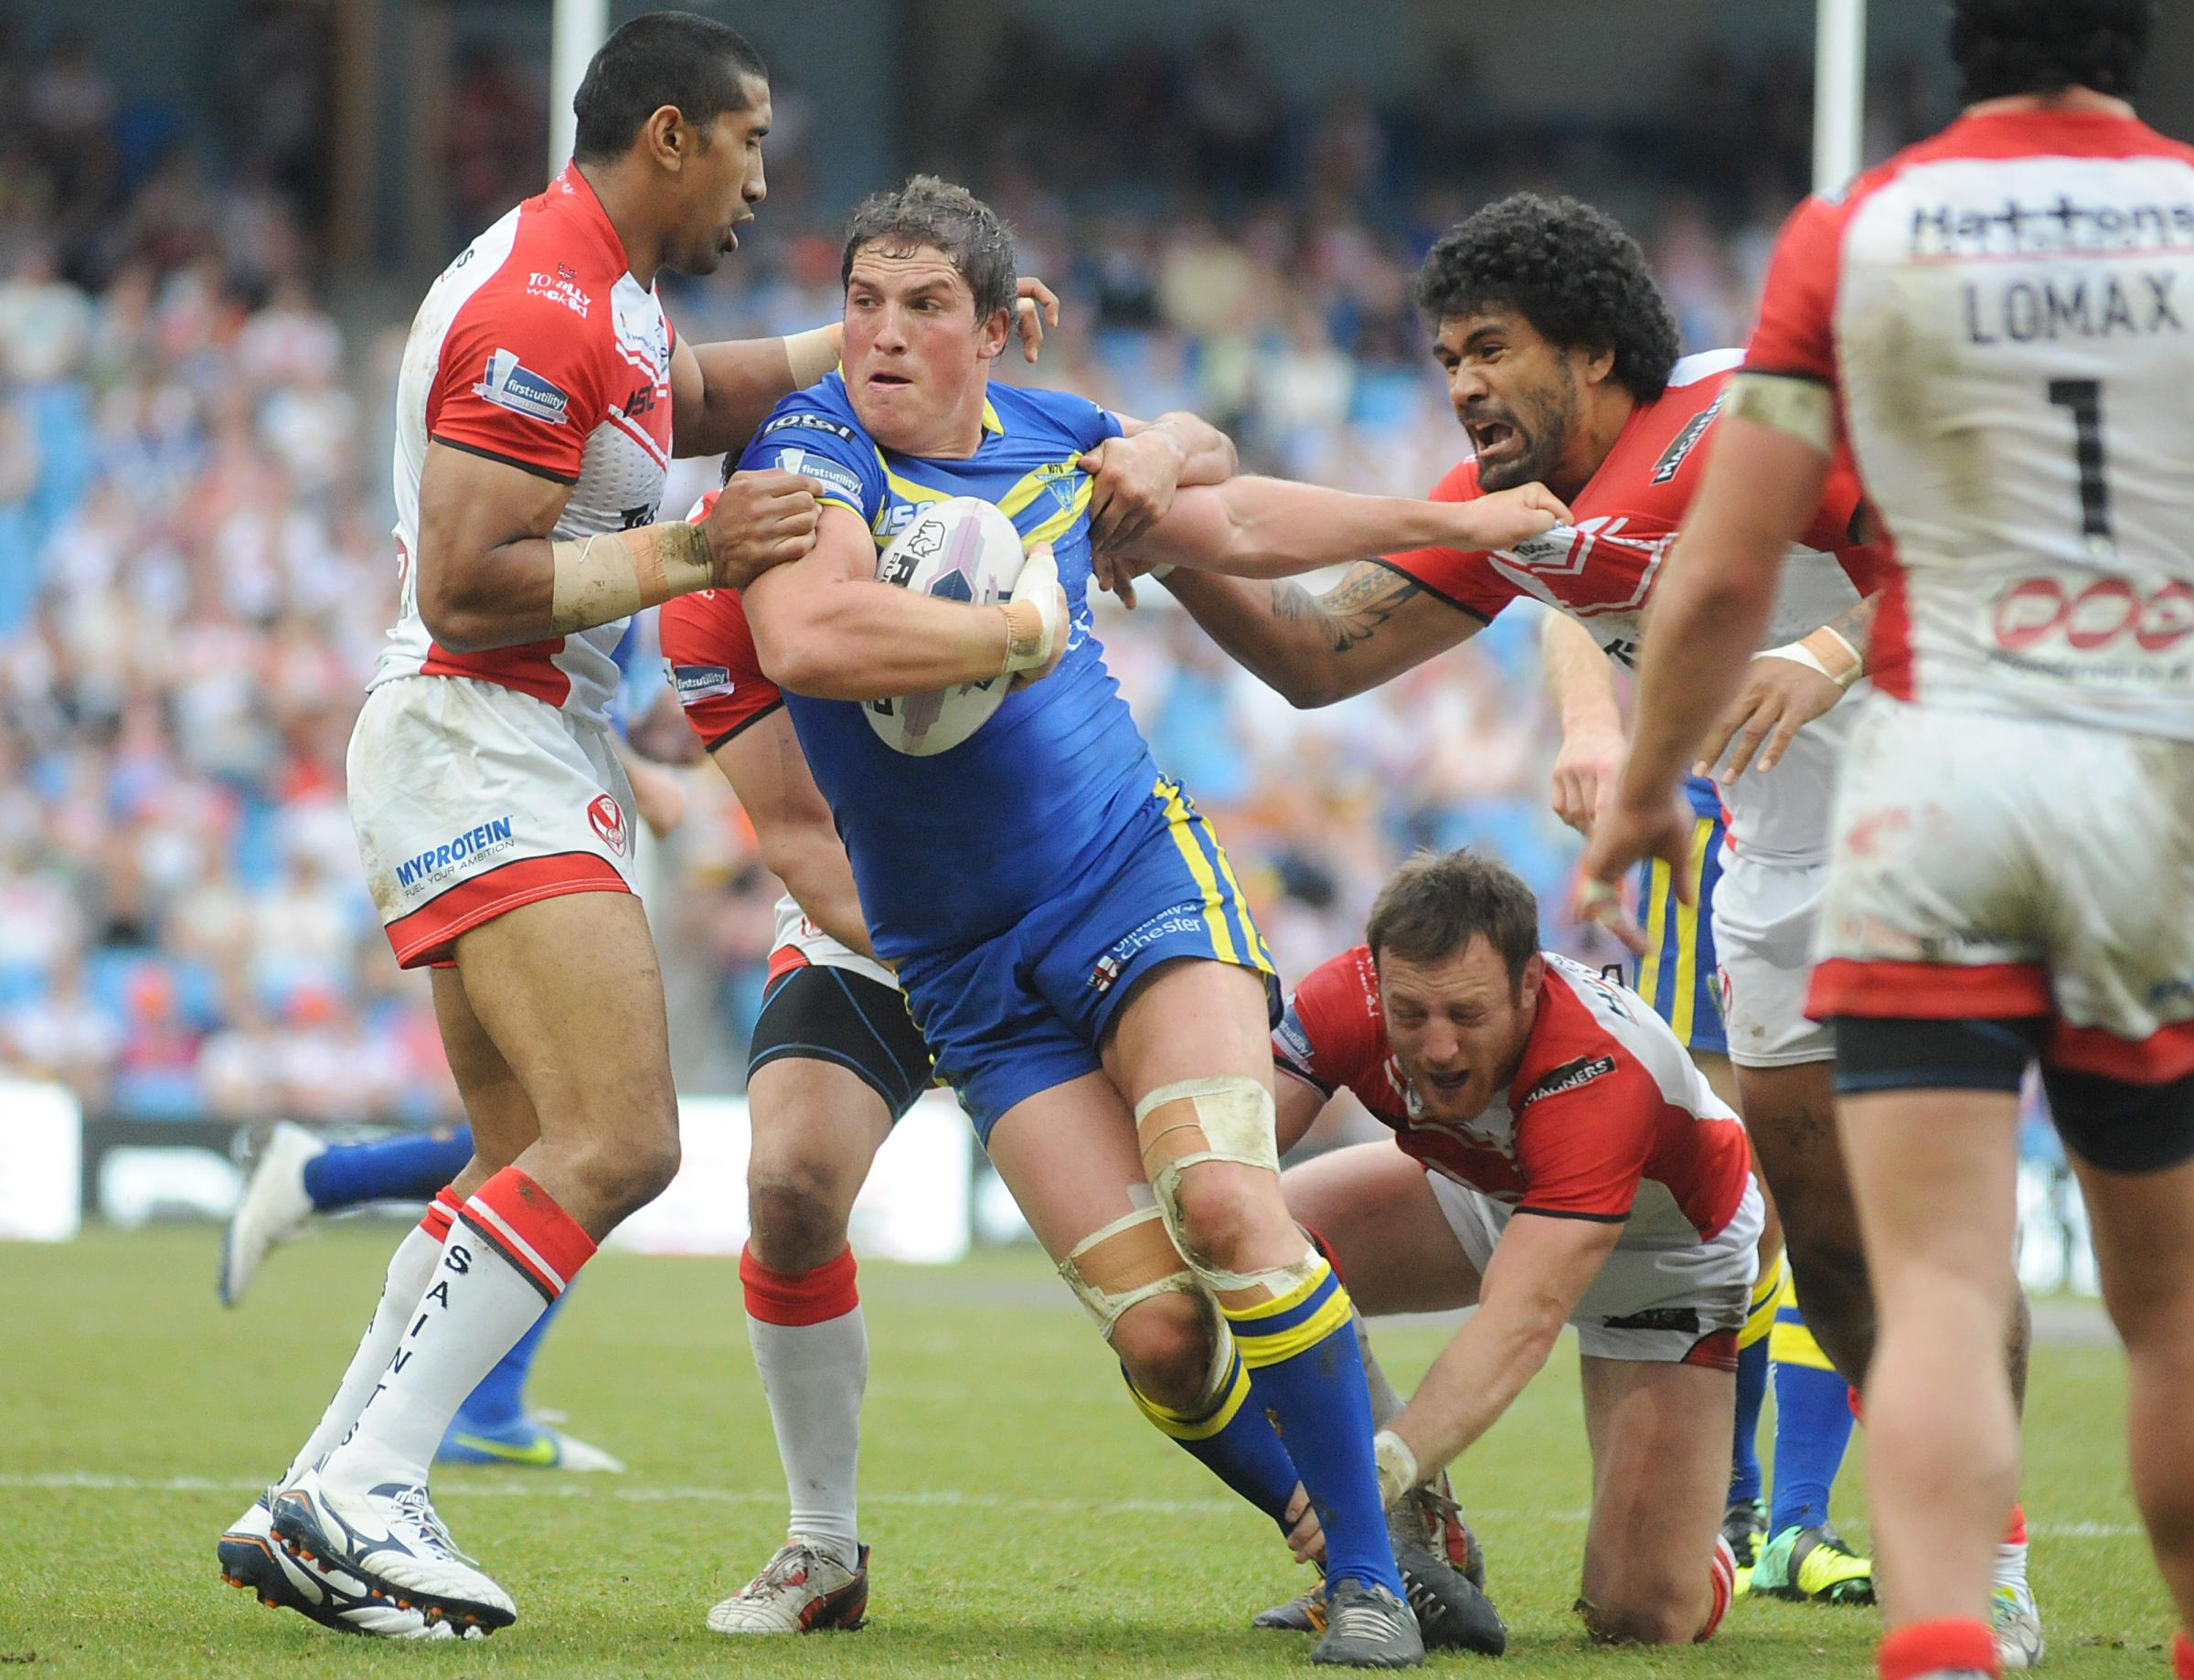 Ben Harrison charging in against St Helens